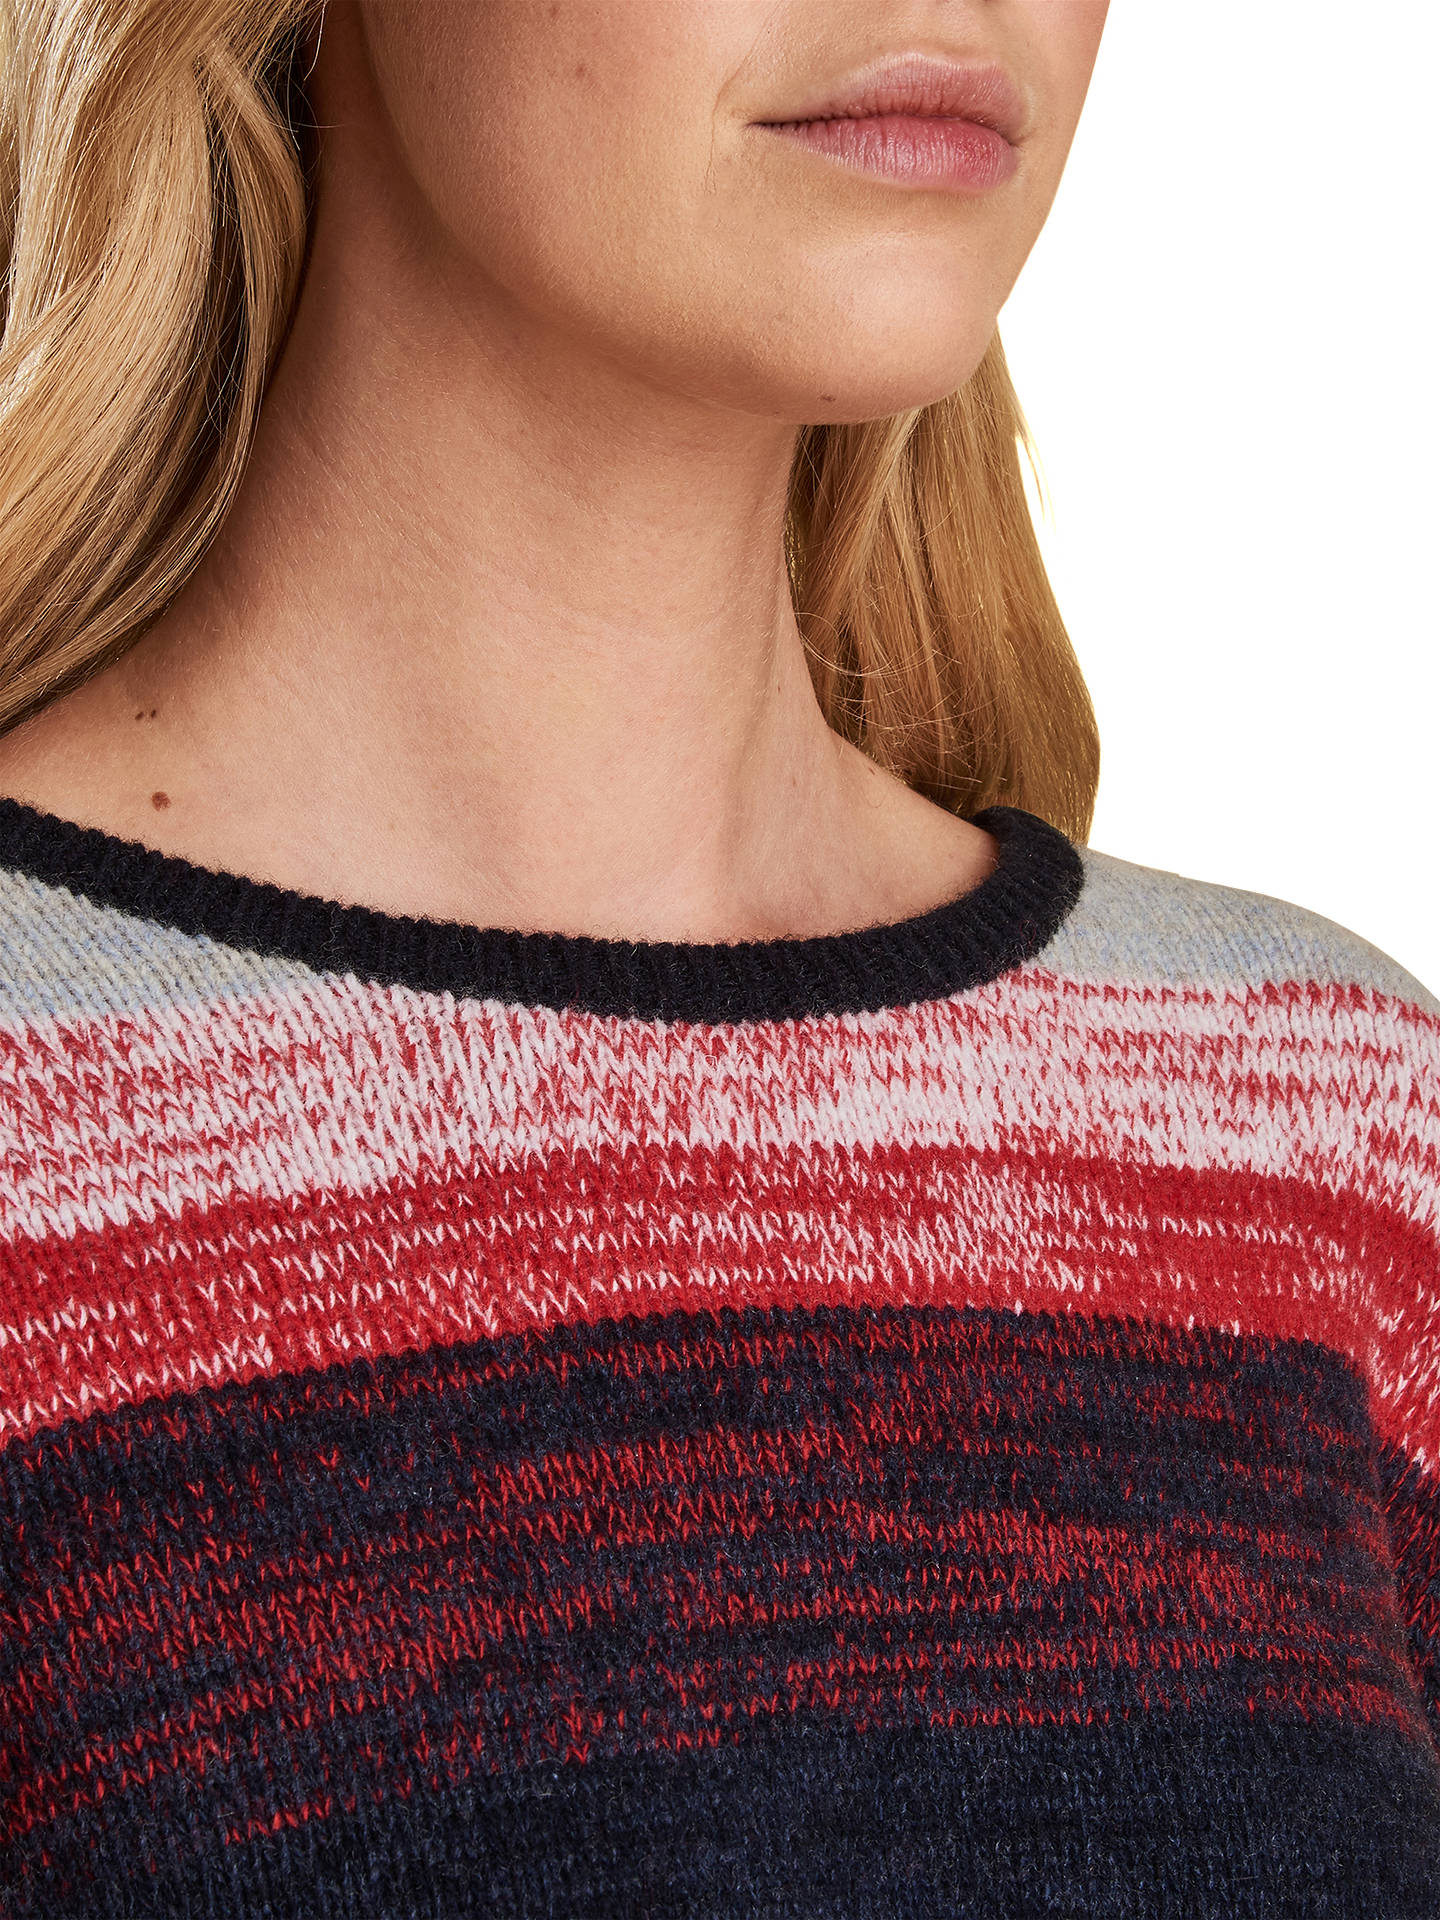 BuyBarbour Rhossili Stripe Jumper, Navy/Multi, 8 Online at johnlewis.com